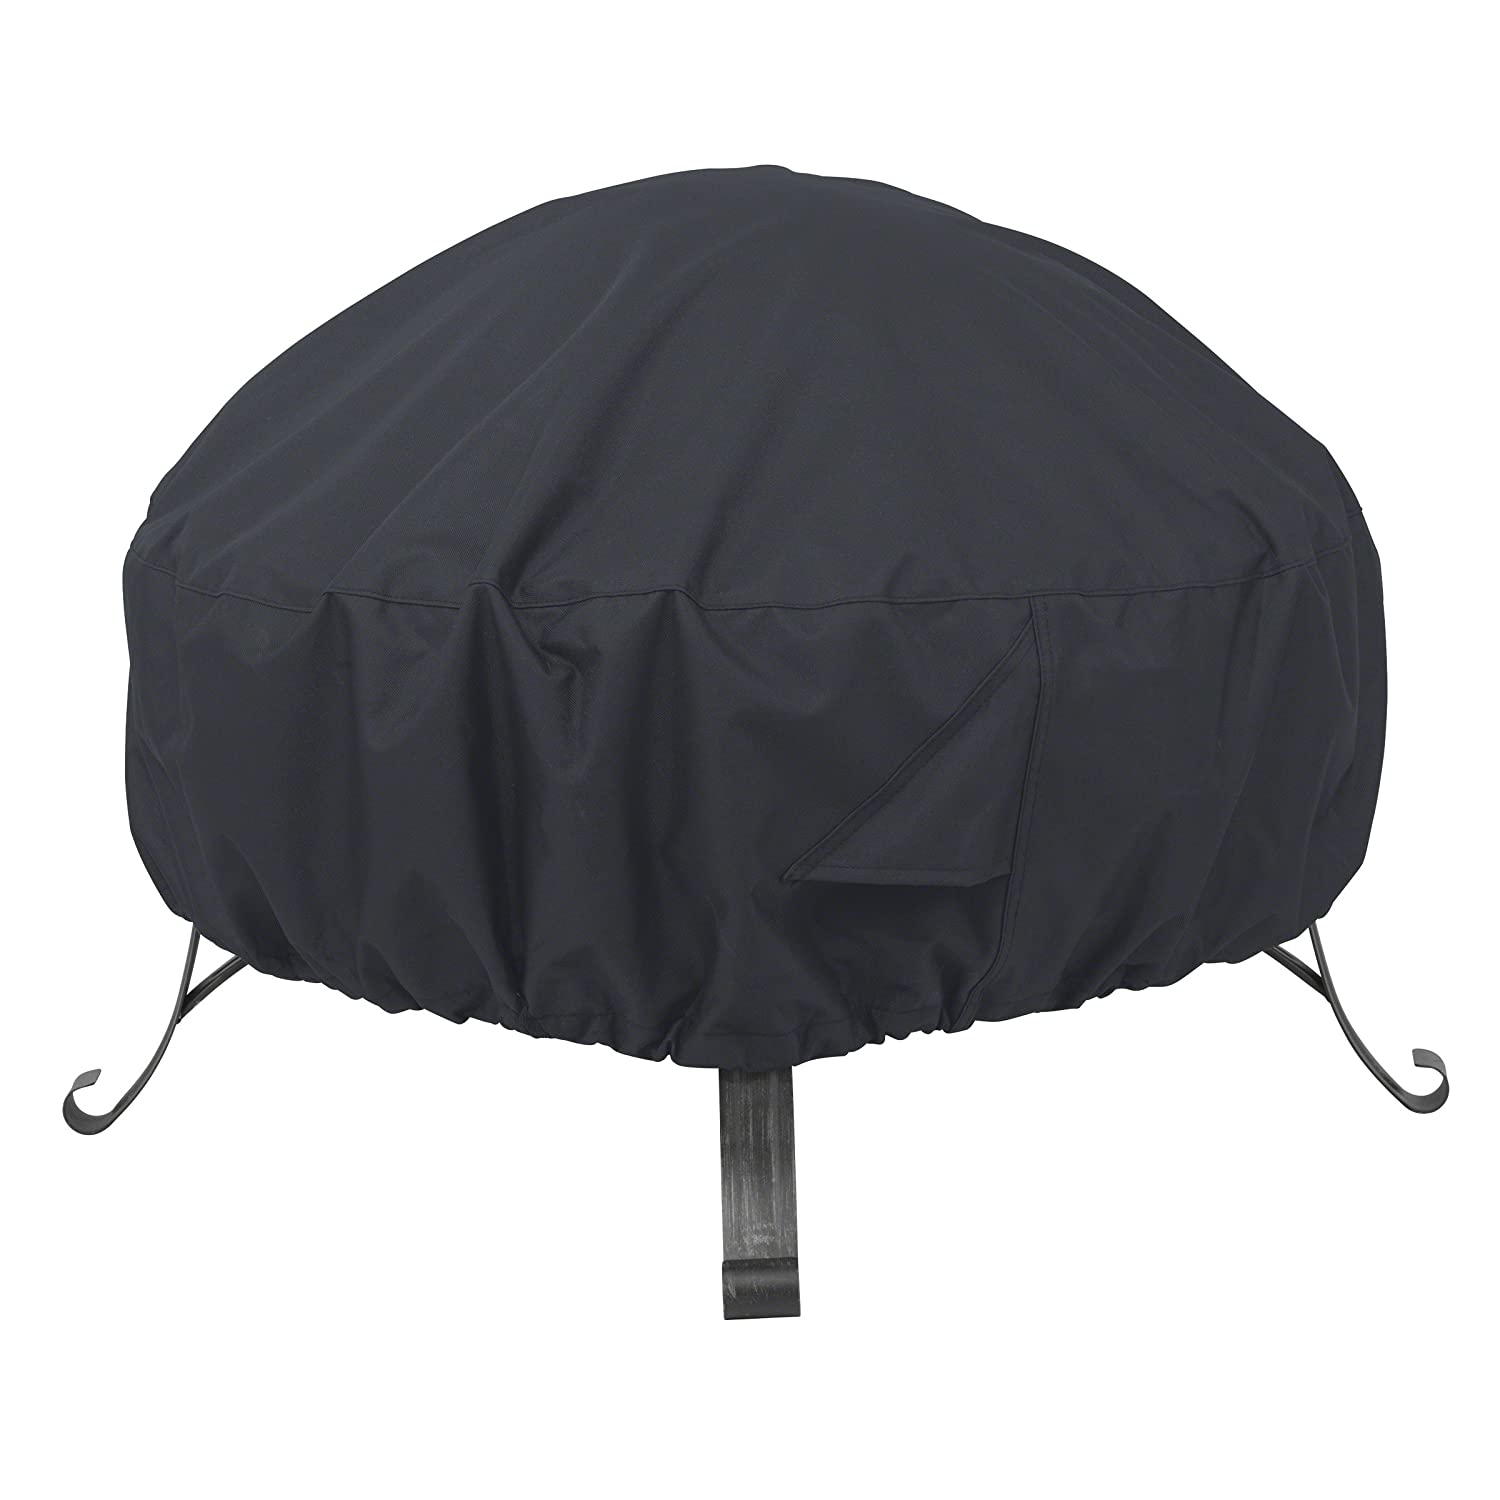 "AmazonBasics Round Patio Fire Pit Cover - 60"", Black"